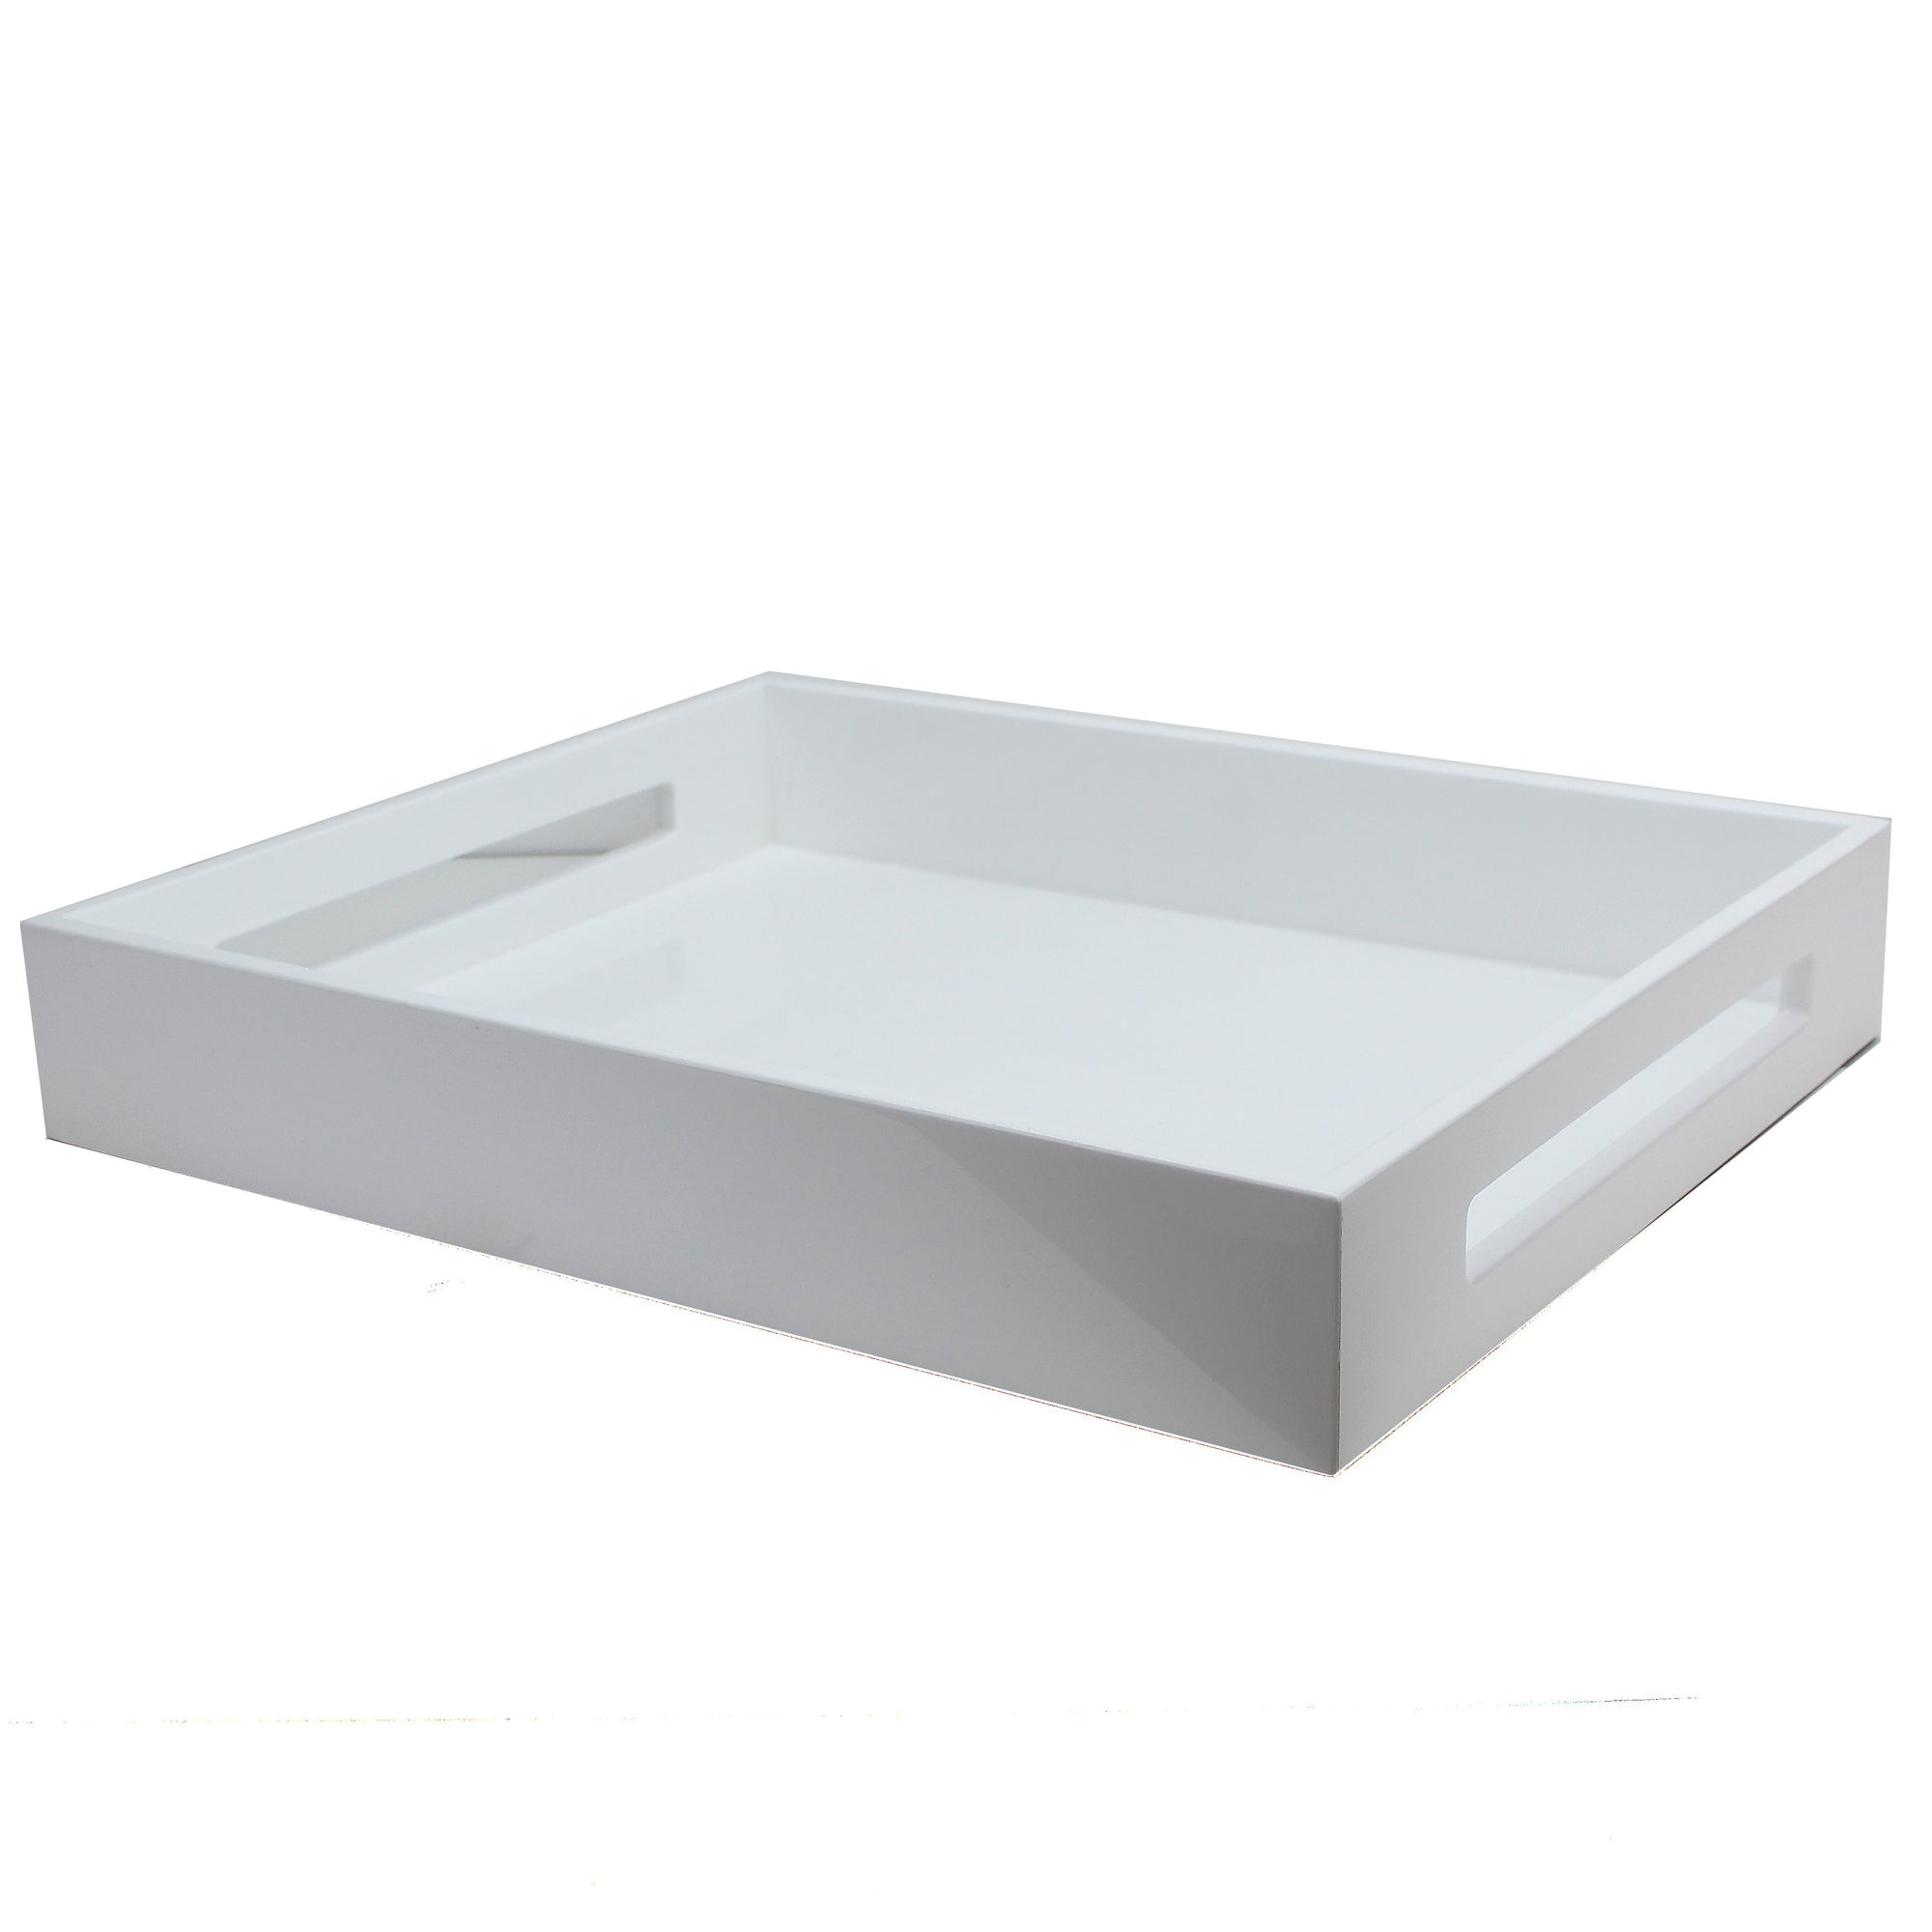 Addison Ross - 16x14 White Medium Lacquered Serving Tray